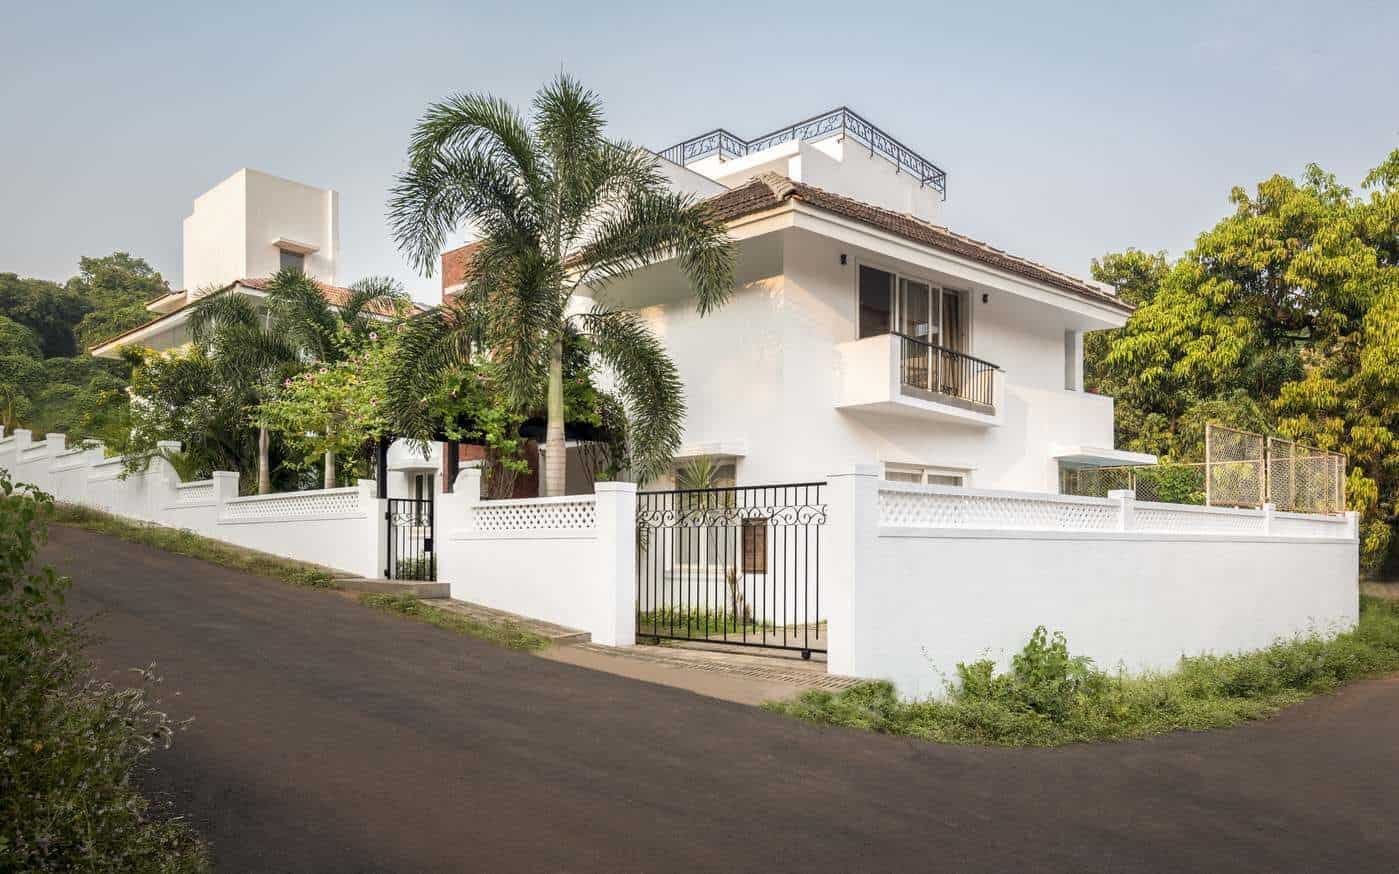 luxury villas in Goa | apartments in Goa | villas in Goa